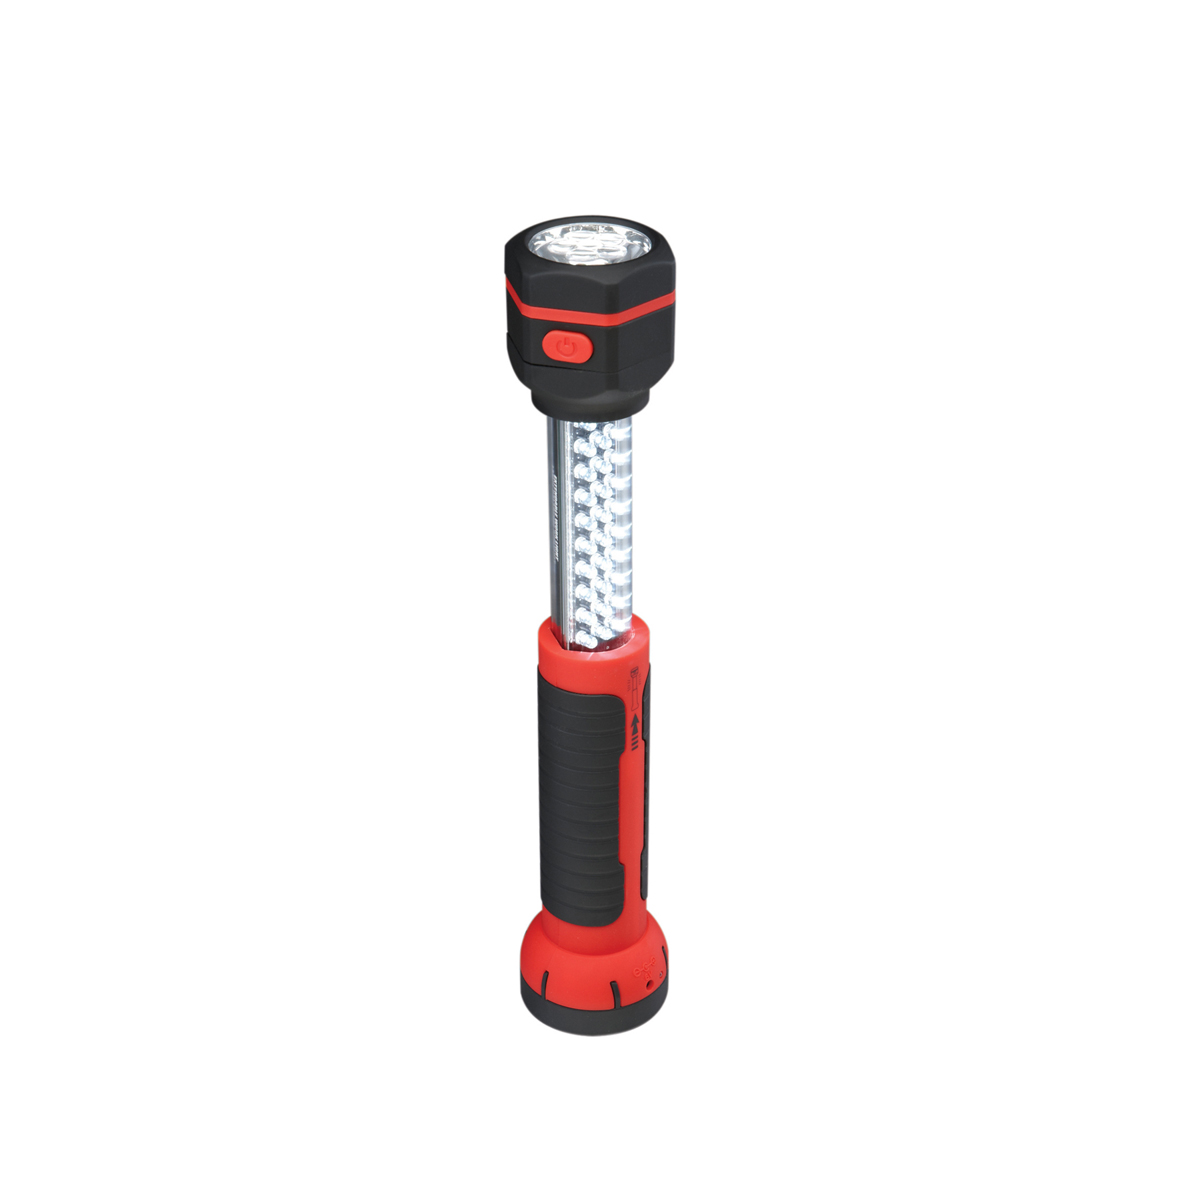 Work Light Total Tools: 2-In-1 Extendable 36 LED Cordless Work Light